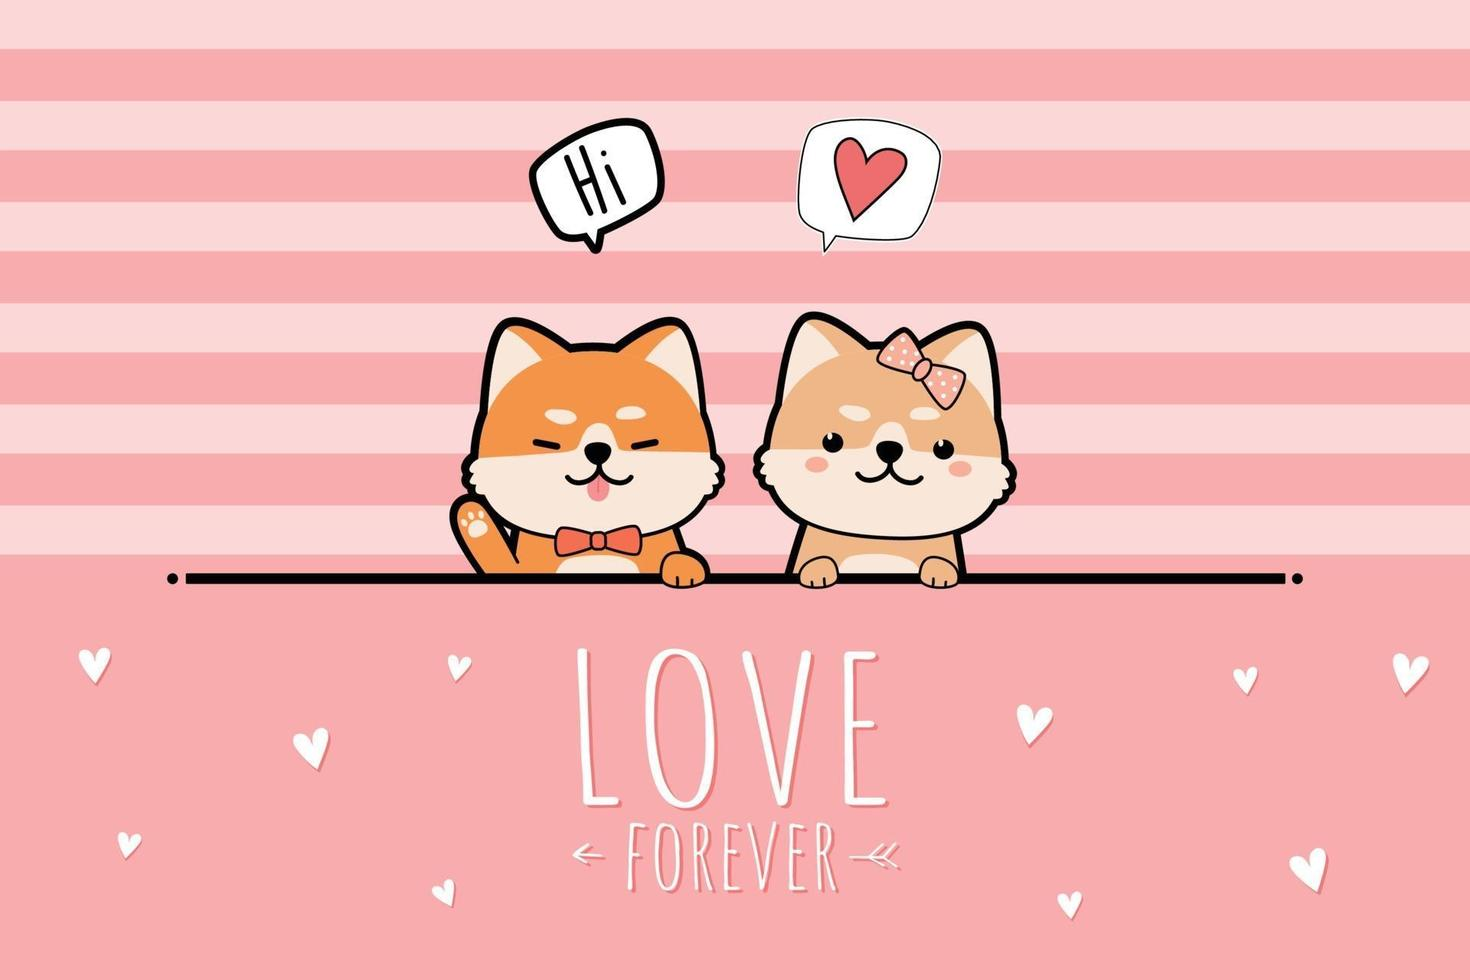 Cute shiba inu puppy lover greeting cartoon, doodle pink pastel valentine card vector